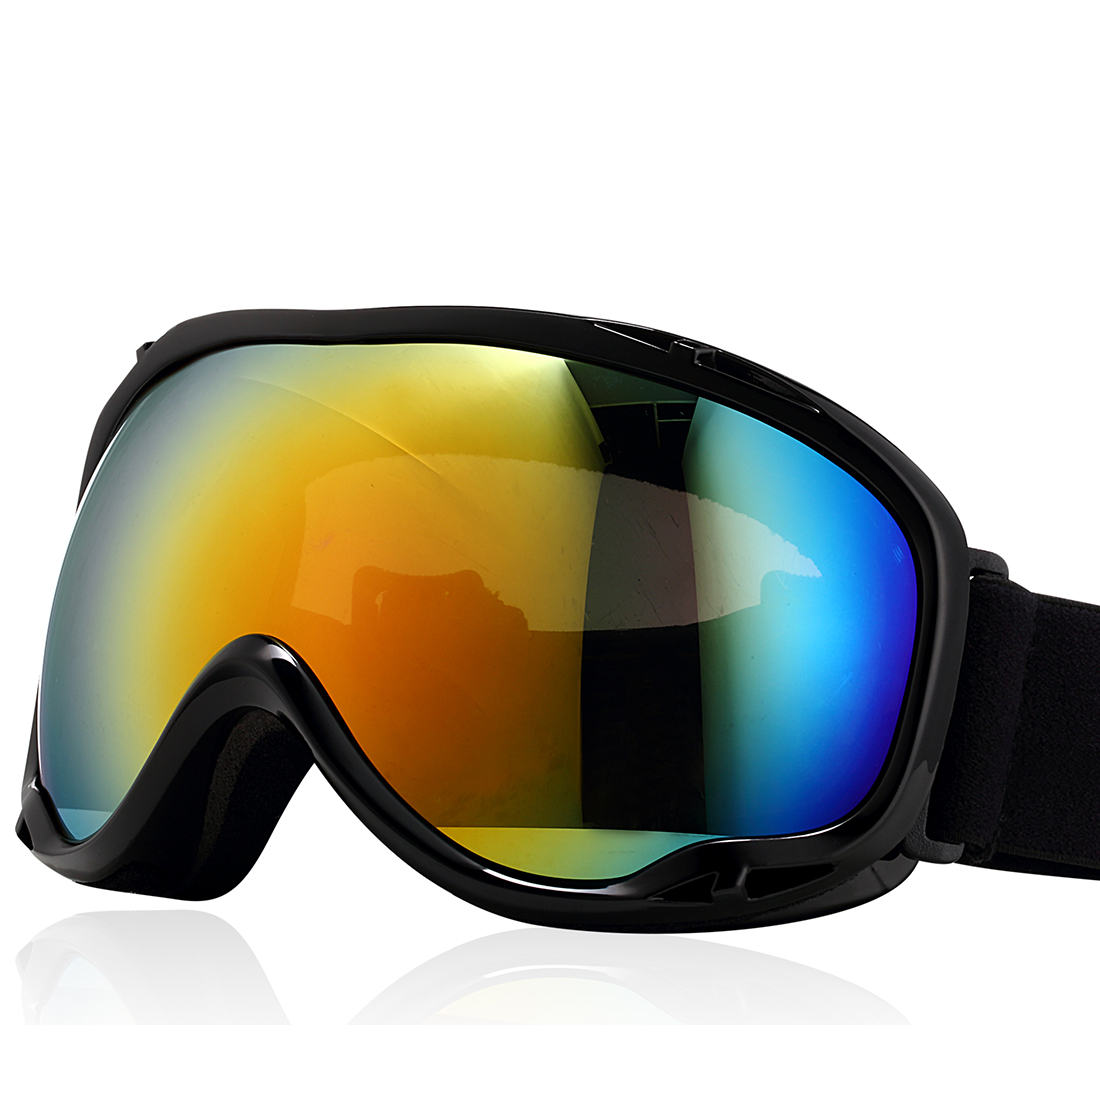 Uxcell Ski Snowboard Goggles UV400 Protect Anti-fog Glasses YH607 Black by